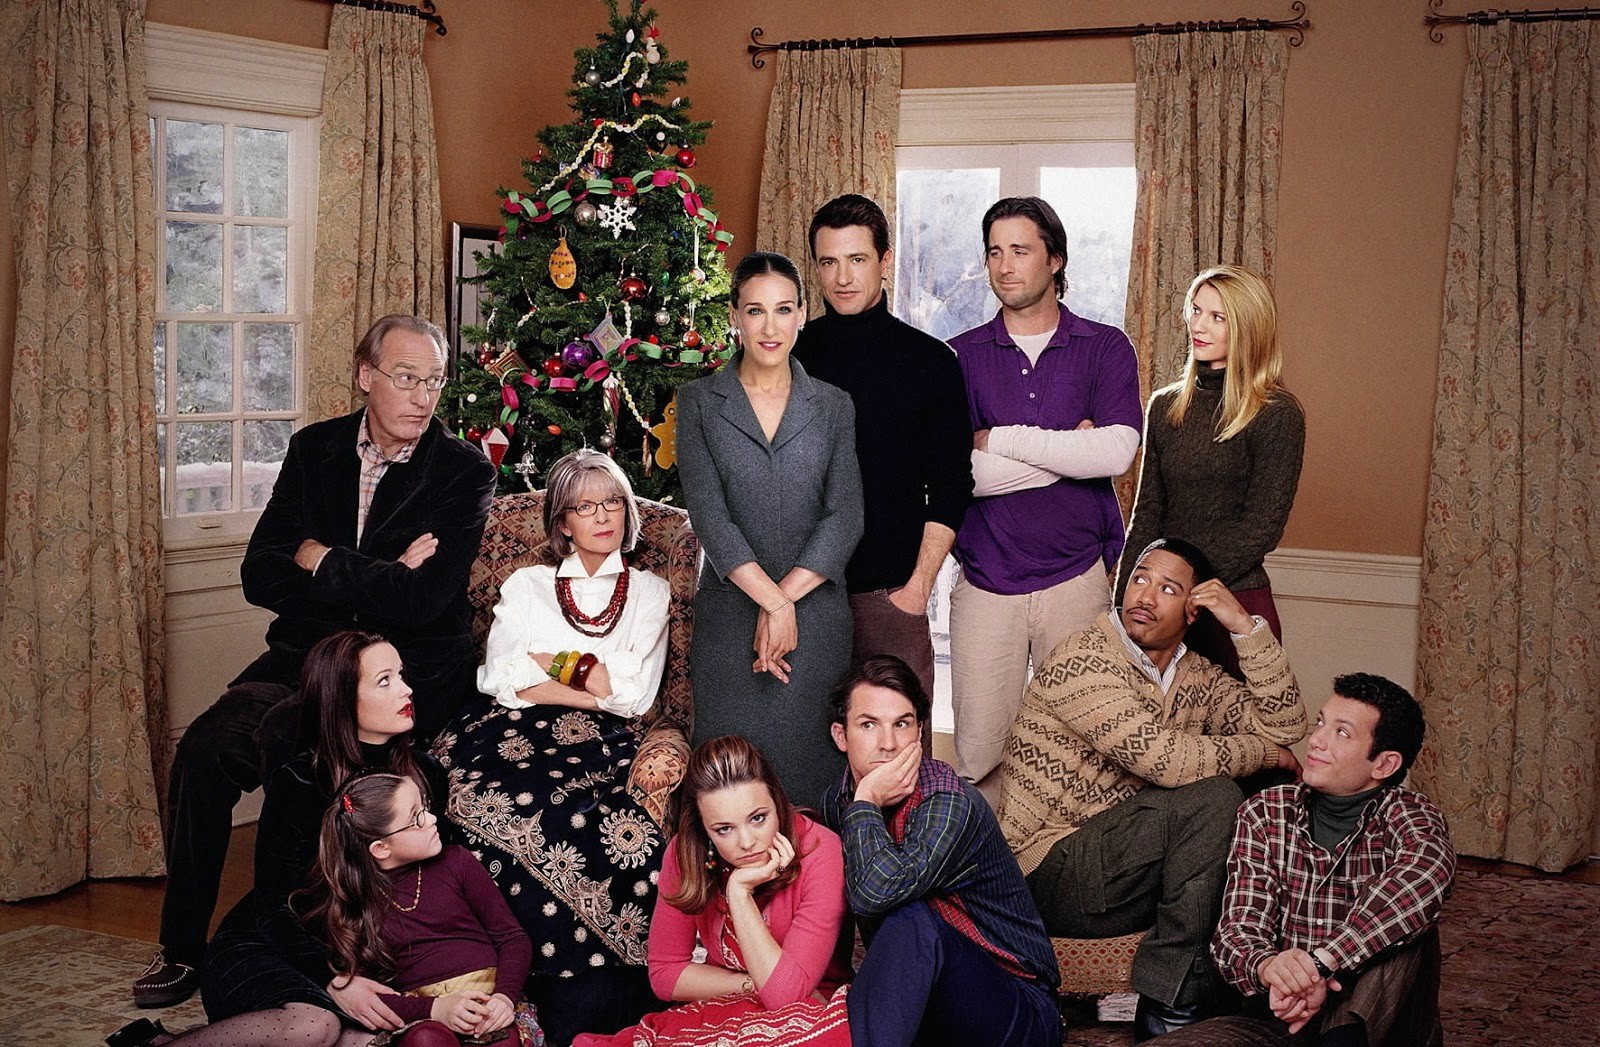 Chic Family Stone Heartwarming Dysctional Family Holiday Movies A Family S Pets Family S Ideas photos Christmas Family Pictures